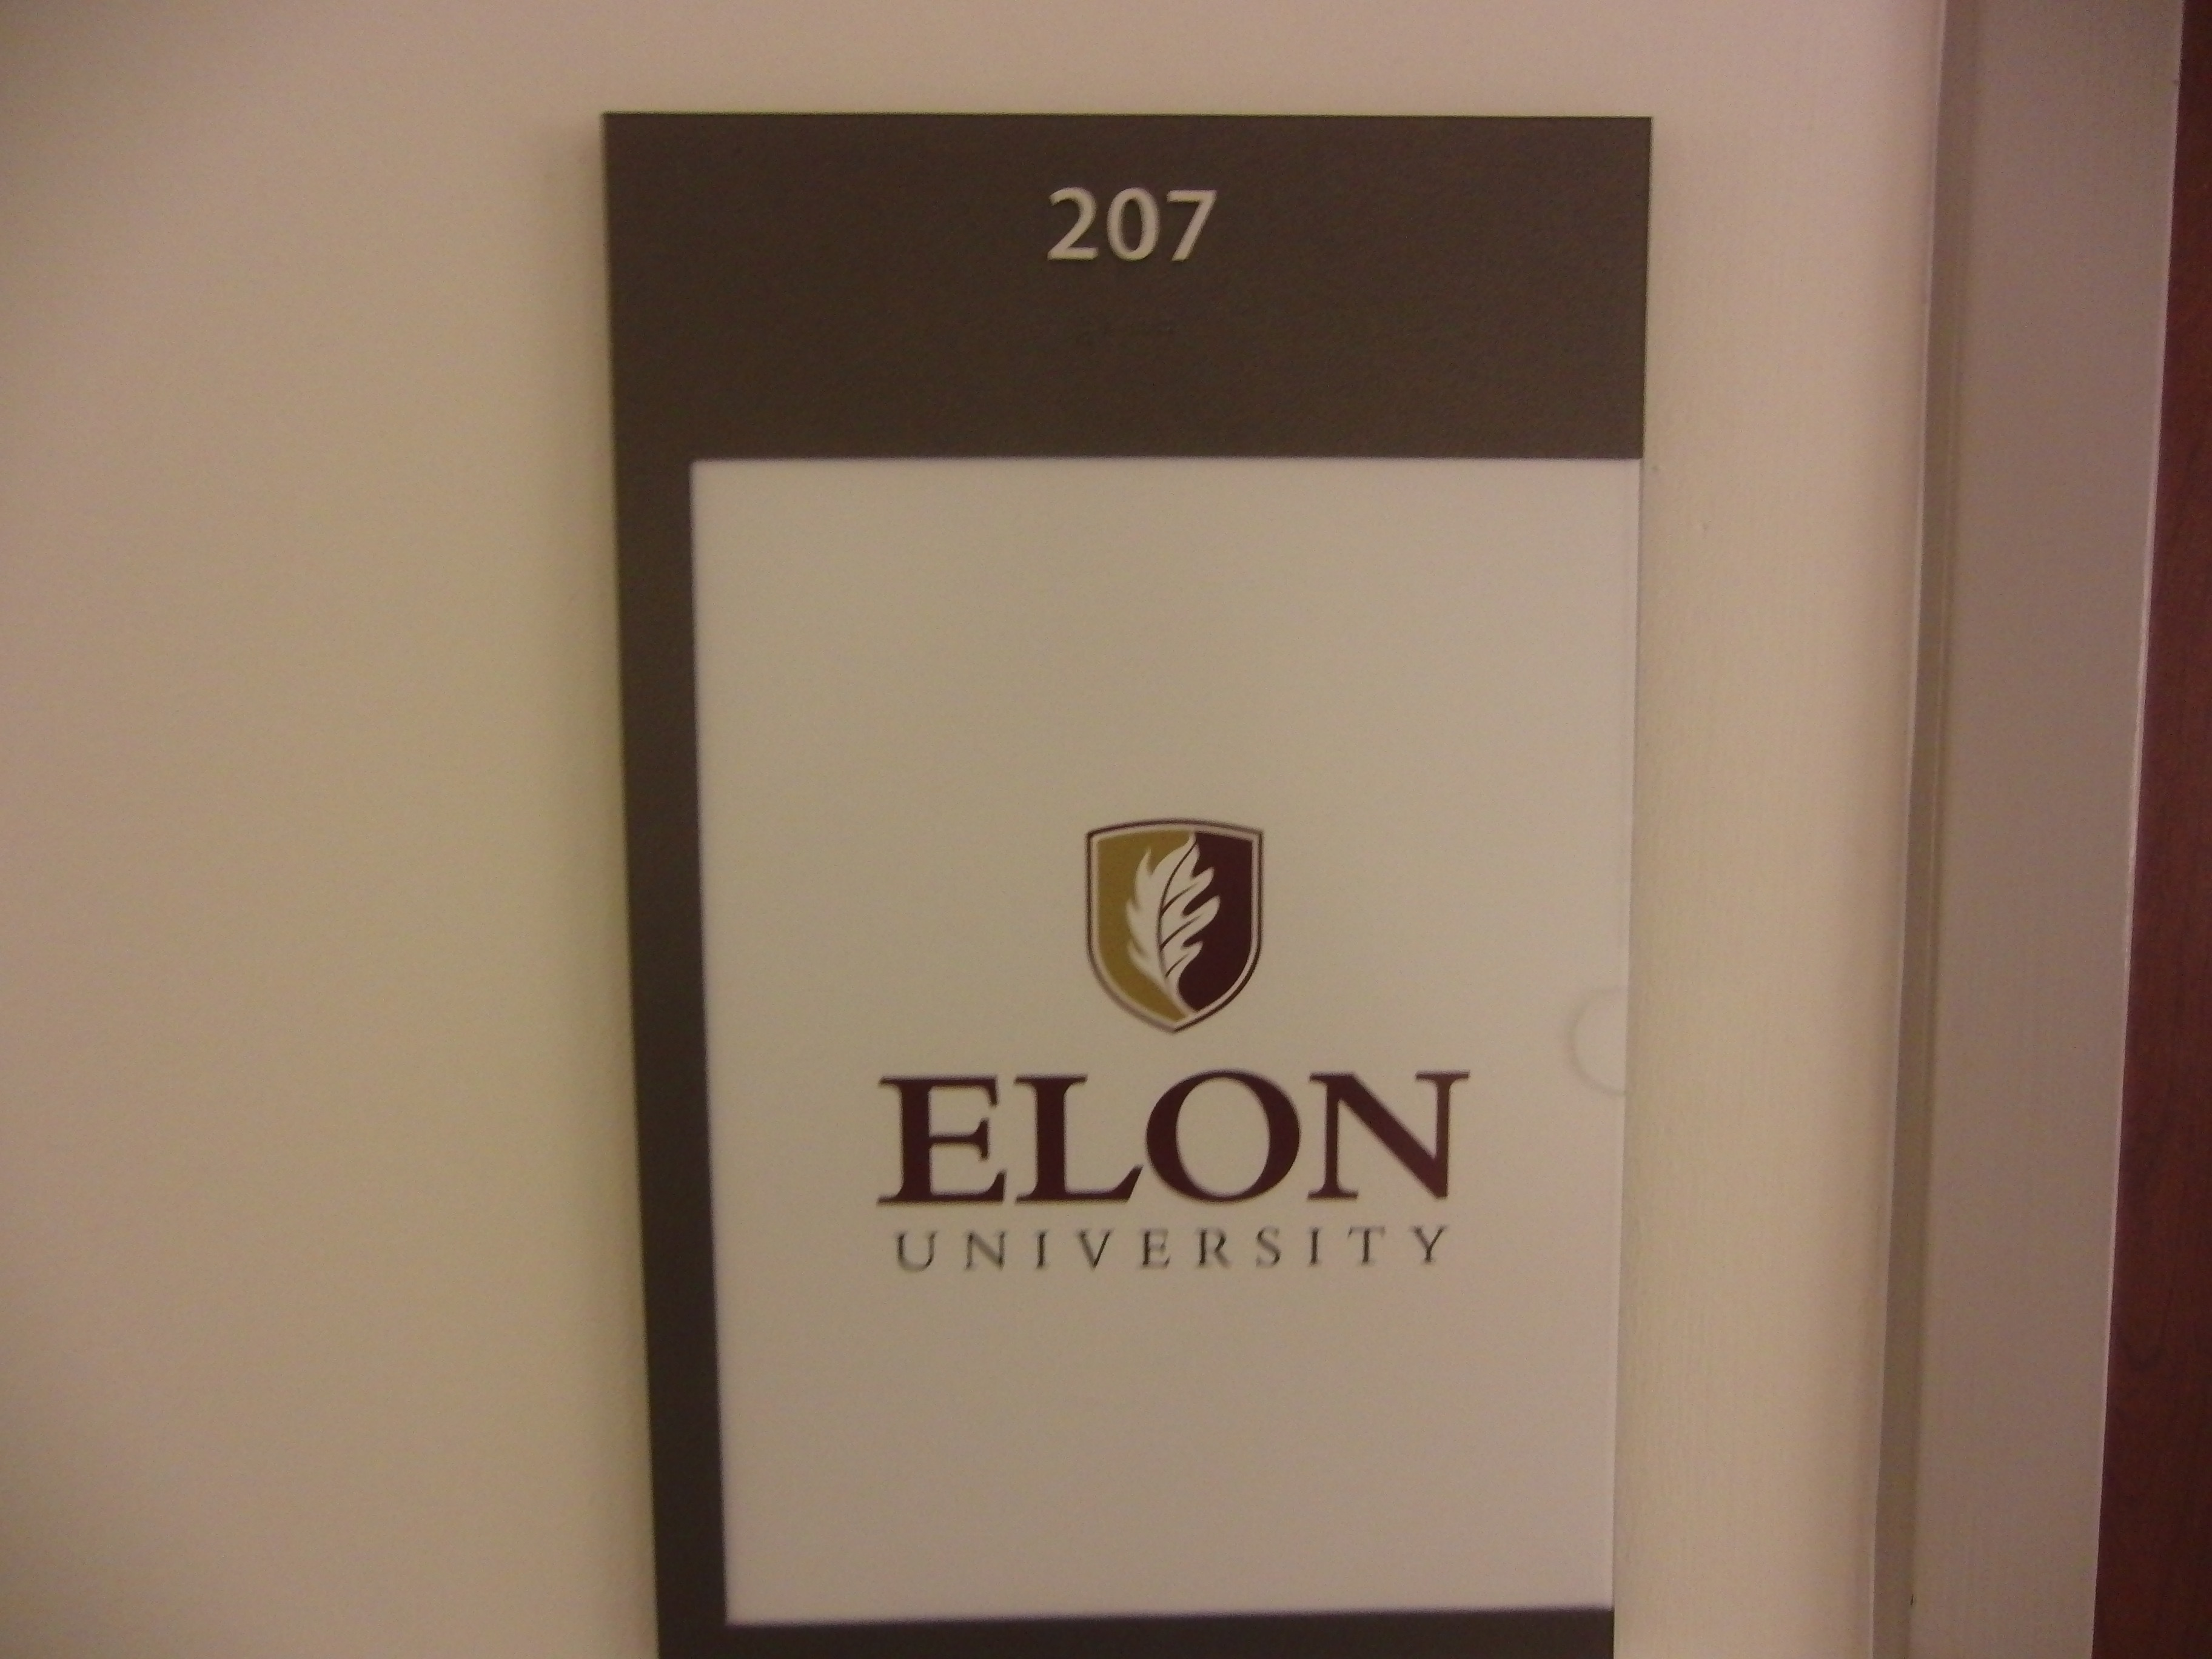 Photo of the McEwen 207 room number with room scheduling information posted below the sign